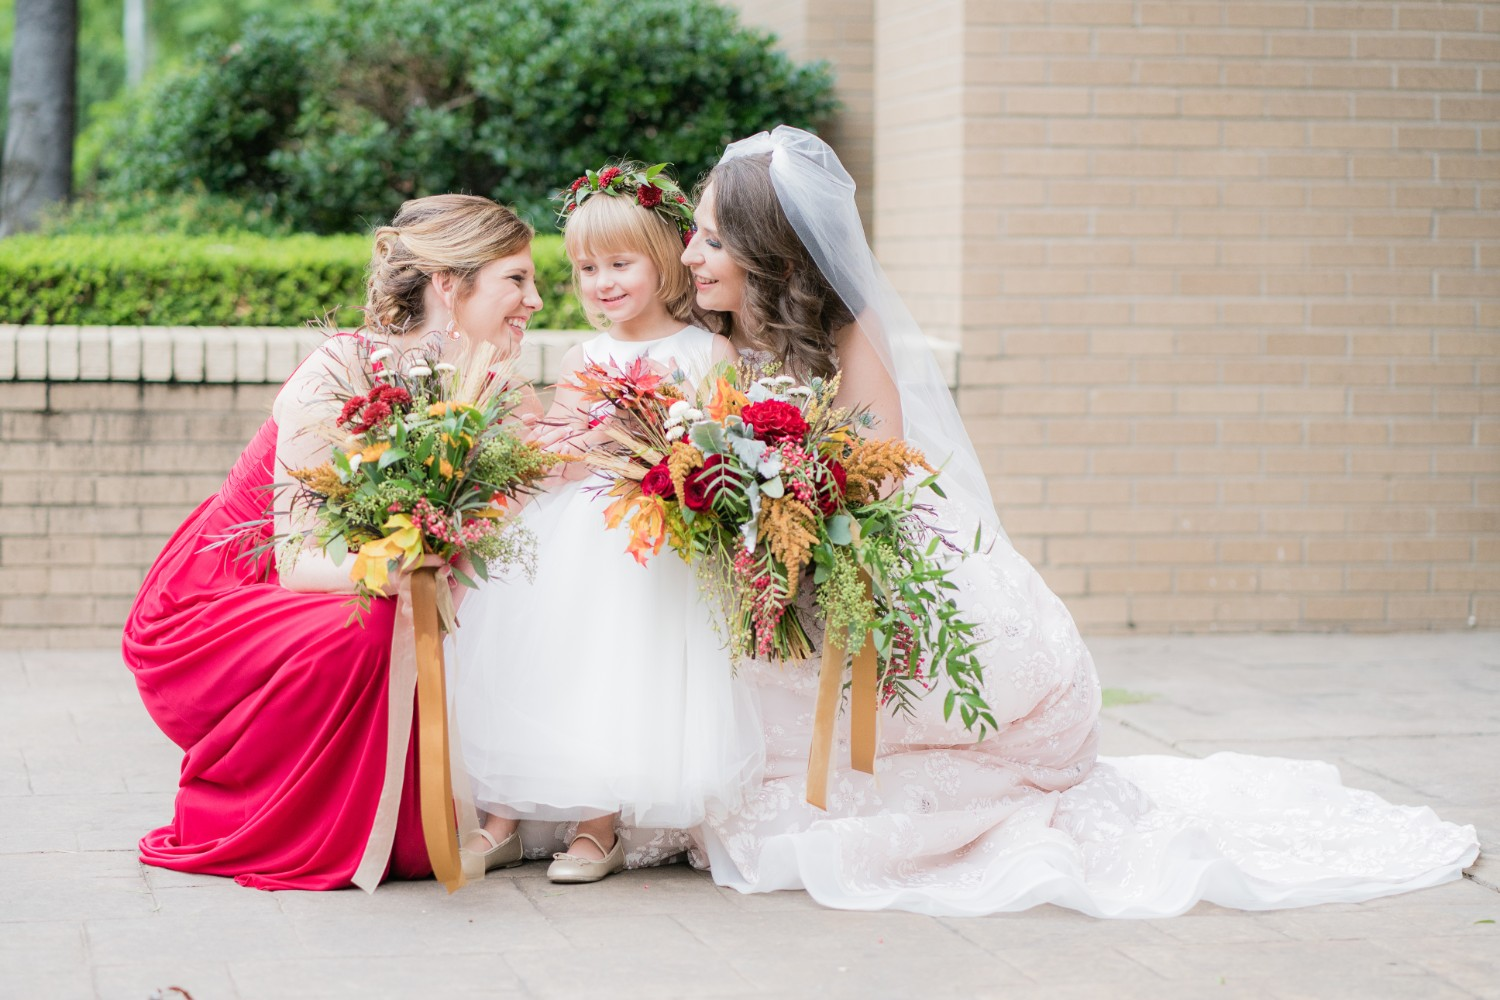 Fall Wedding at Pratt Place Organic Bouquets, Rose of Sharon Floral Designs, Fayetteville, AR